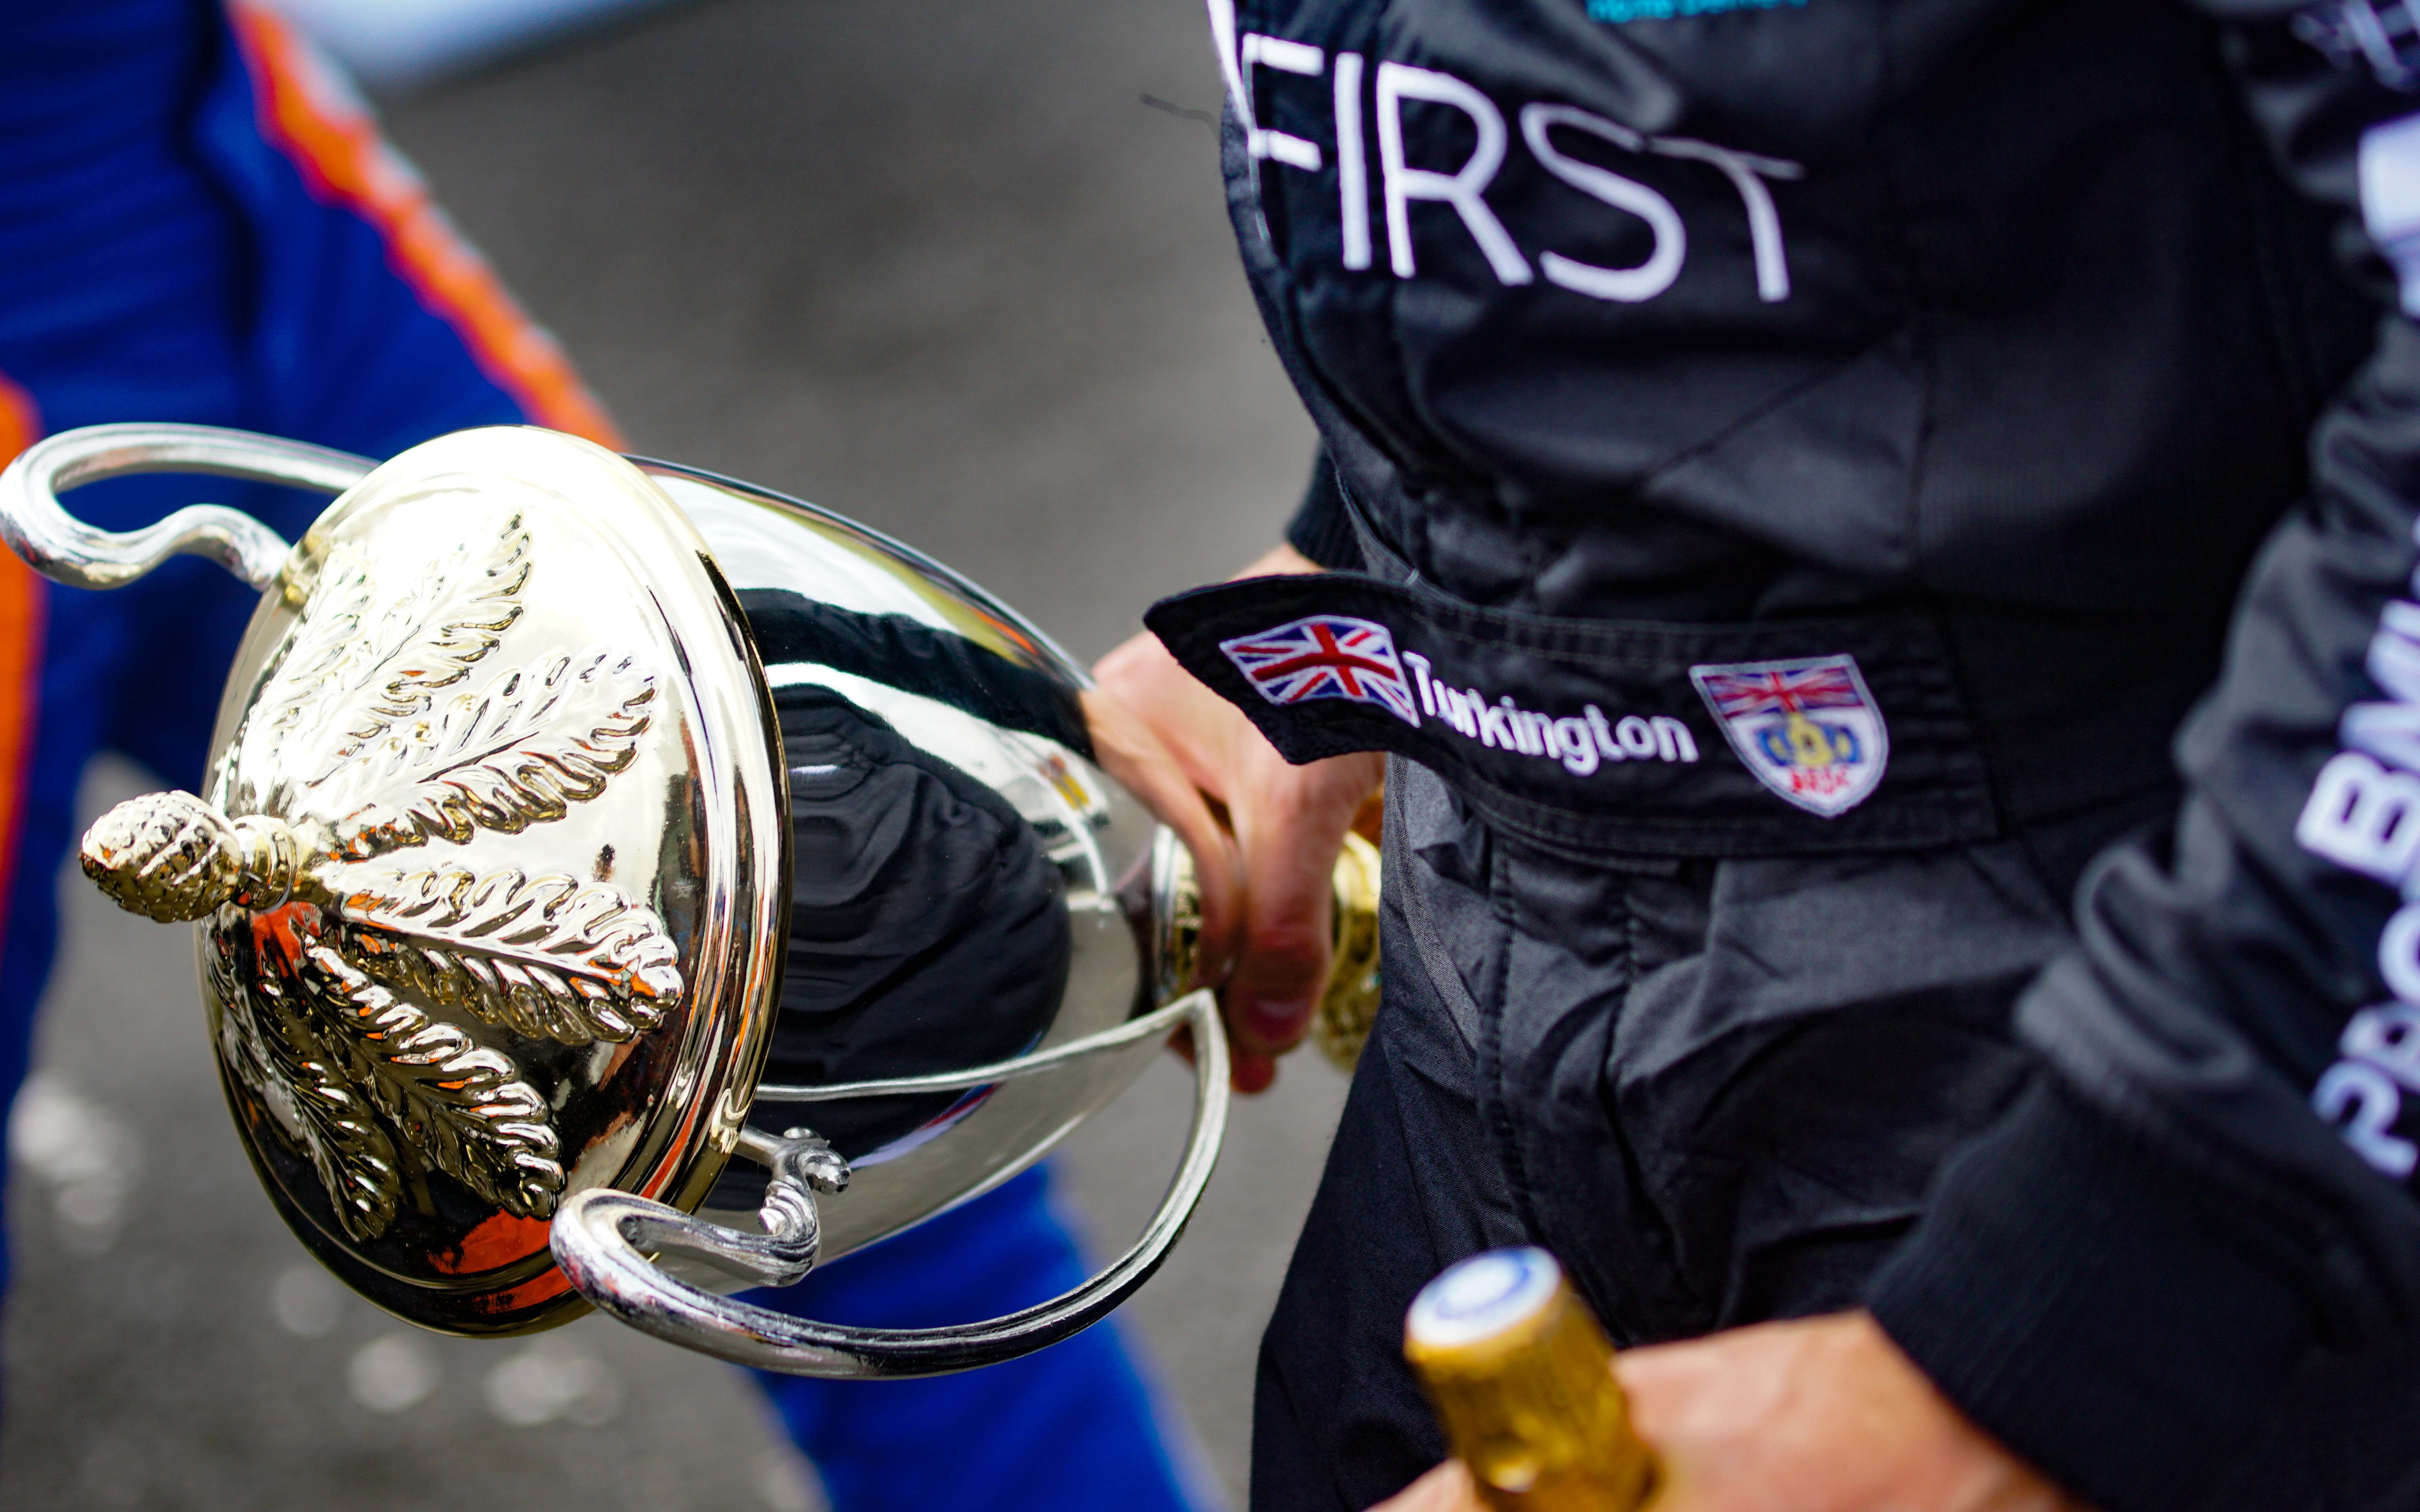 ANOTHER PAIR OF PODIUMS FOR CHAMPIONSHIP LEADER